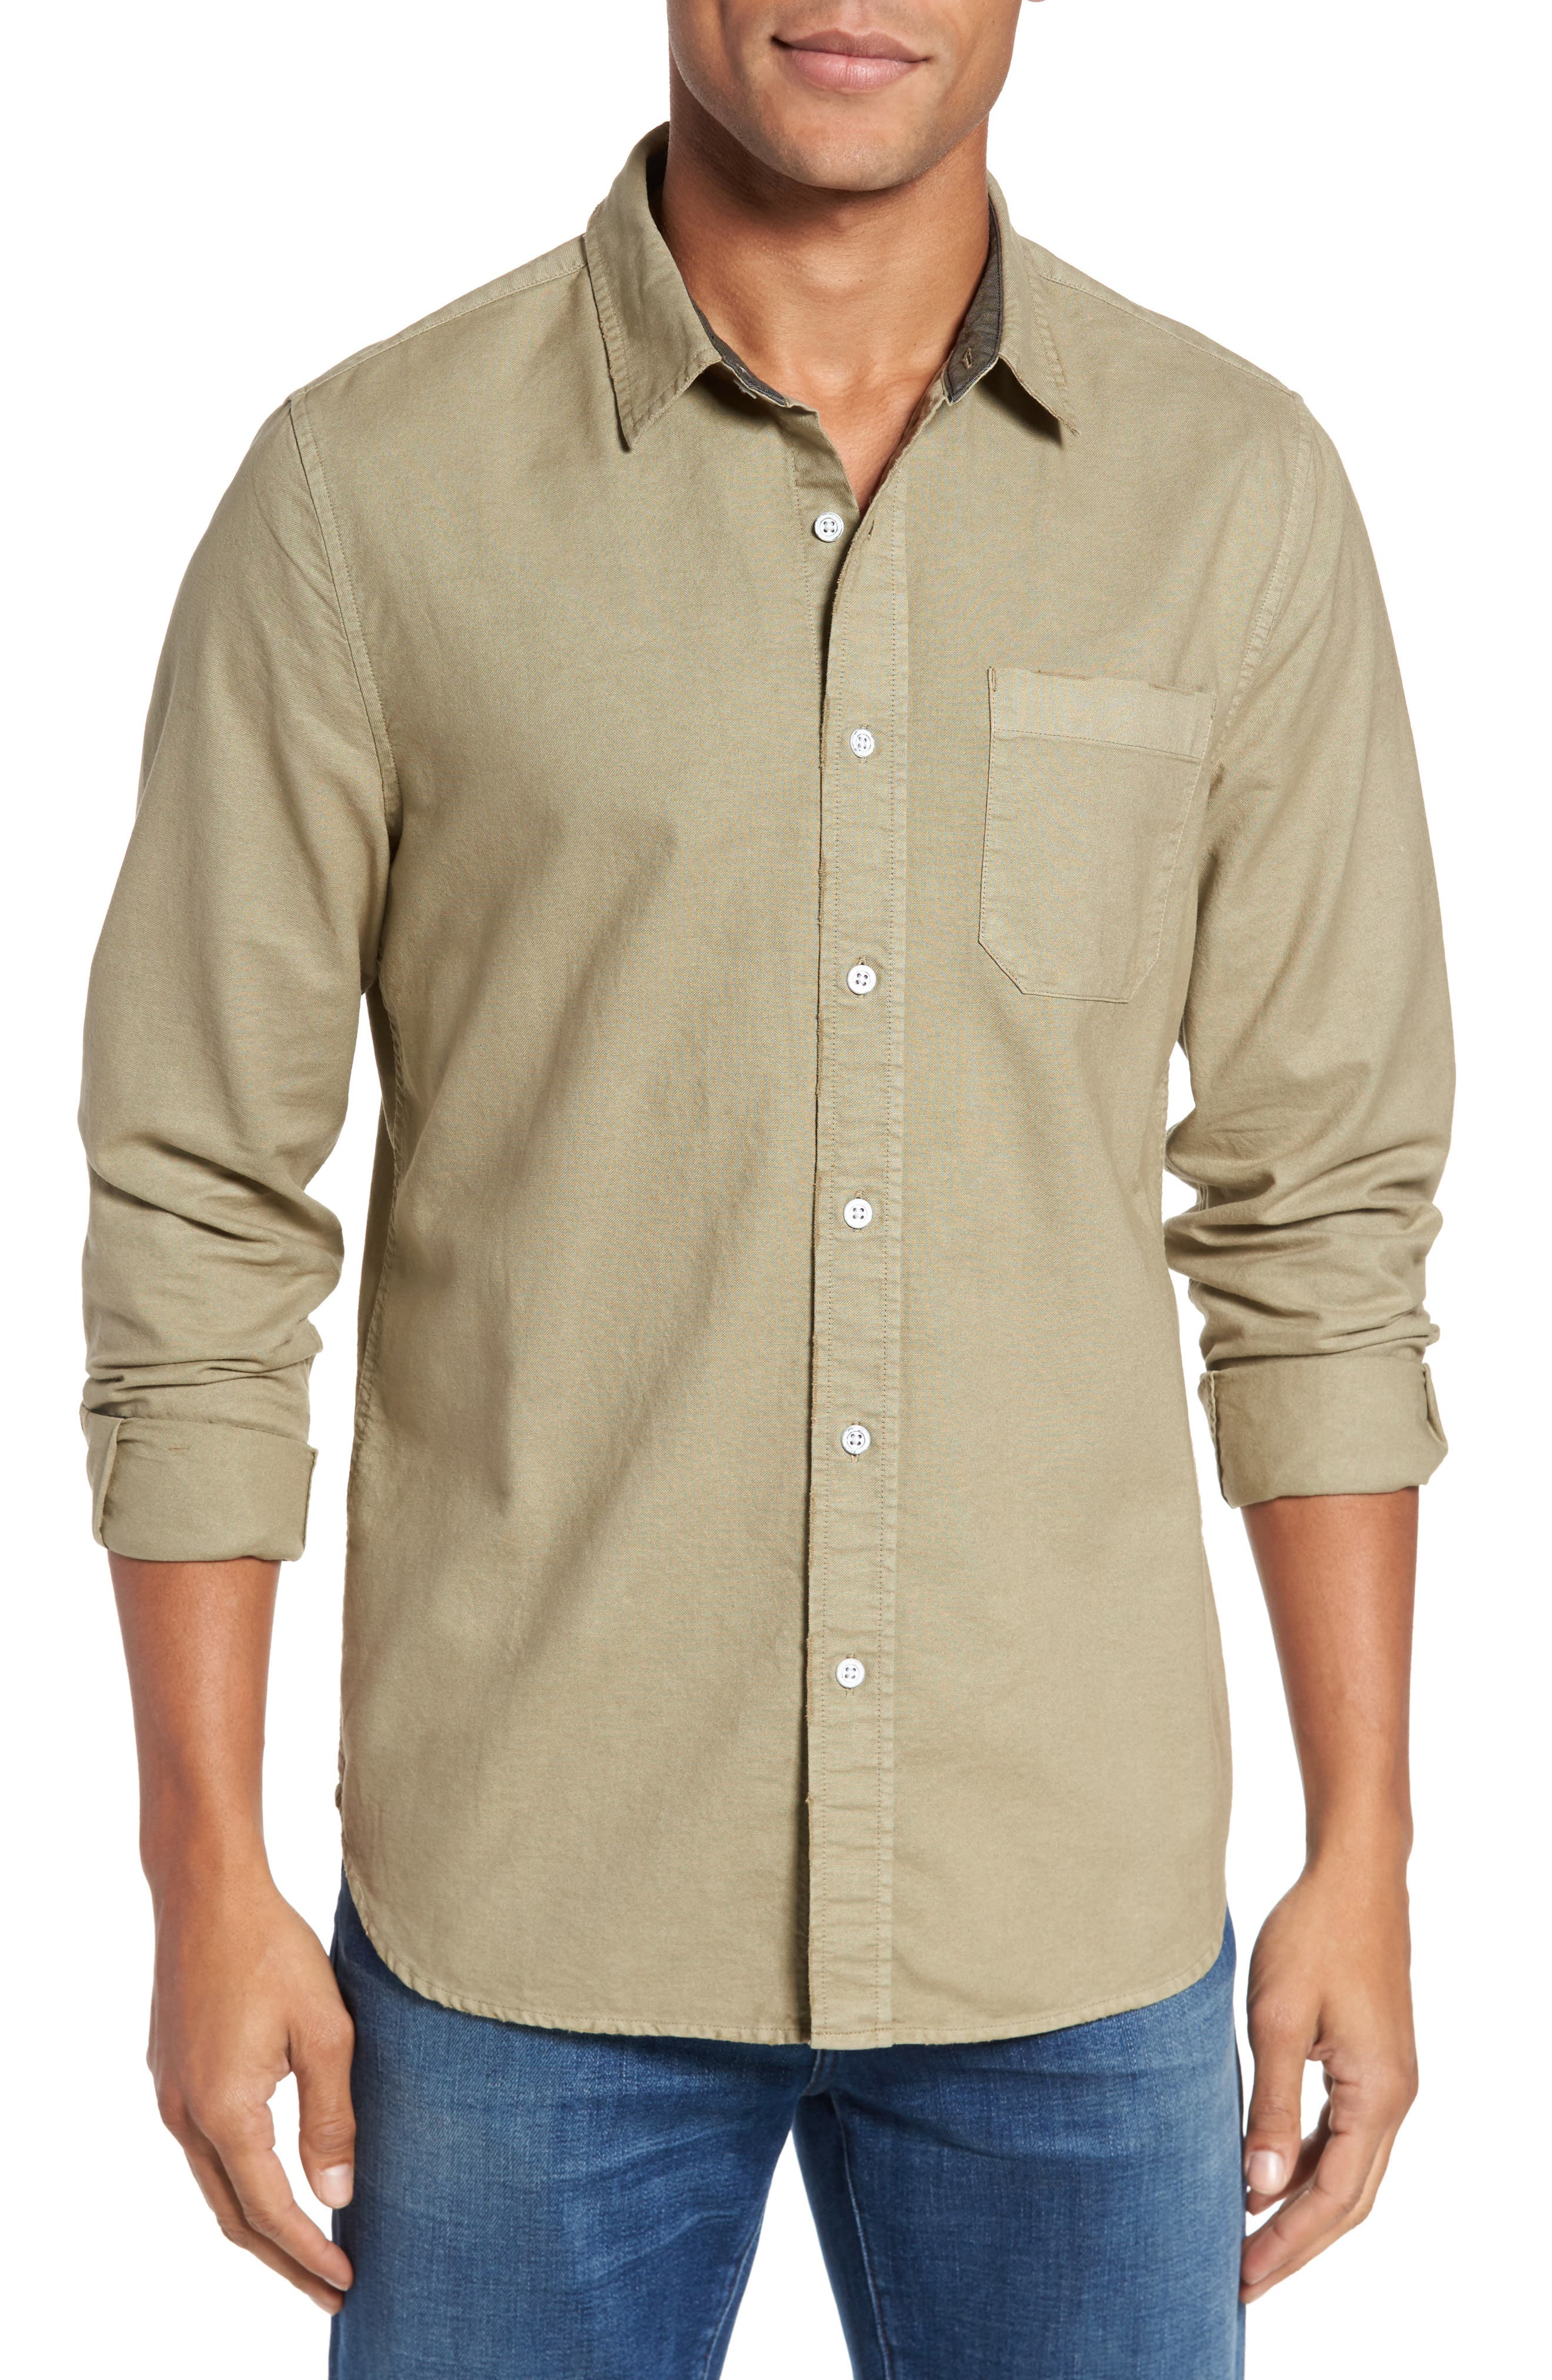 Caleb Slim Fit Twill Sport Shirt,                             Main thumbnail 1, color,                             5 Years Pigment New Moss